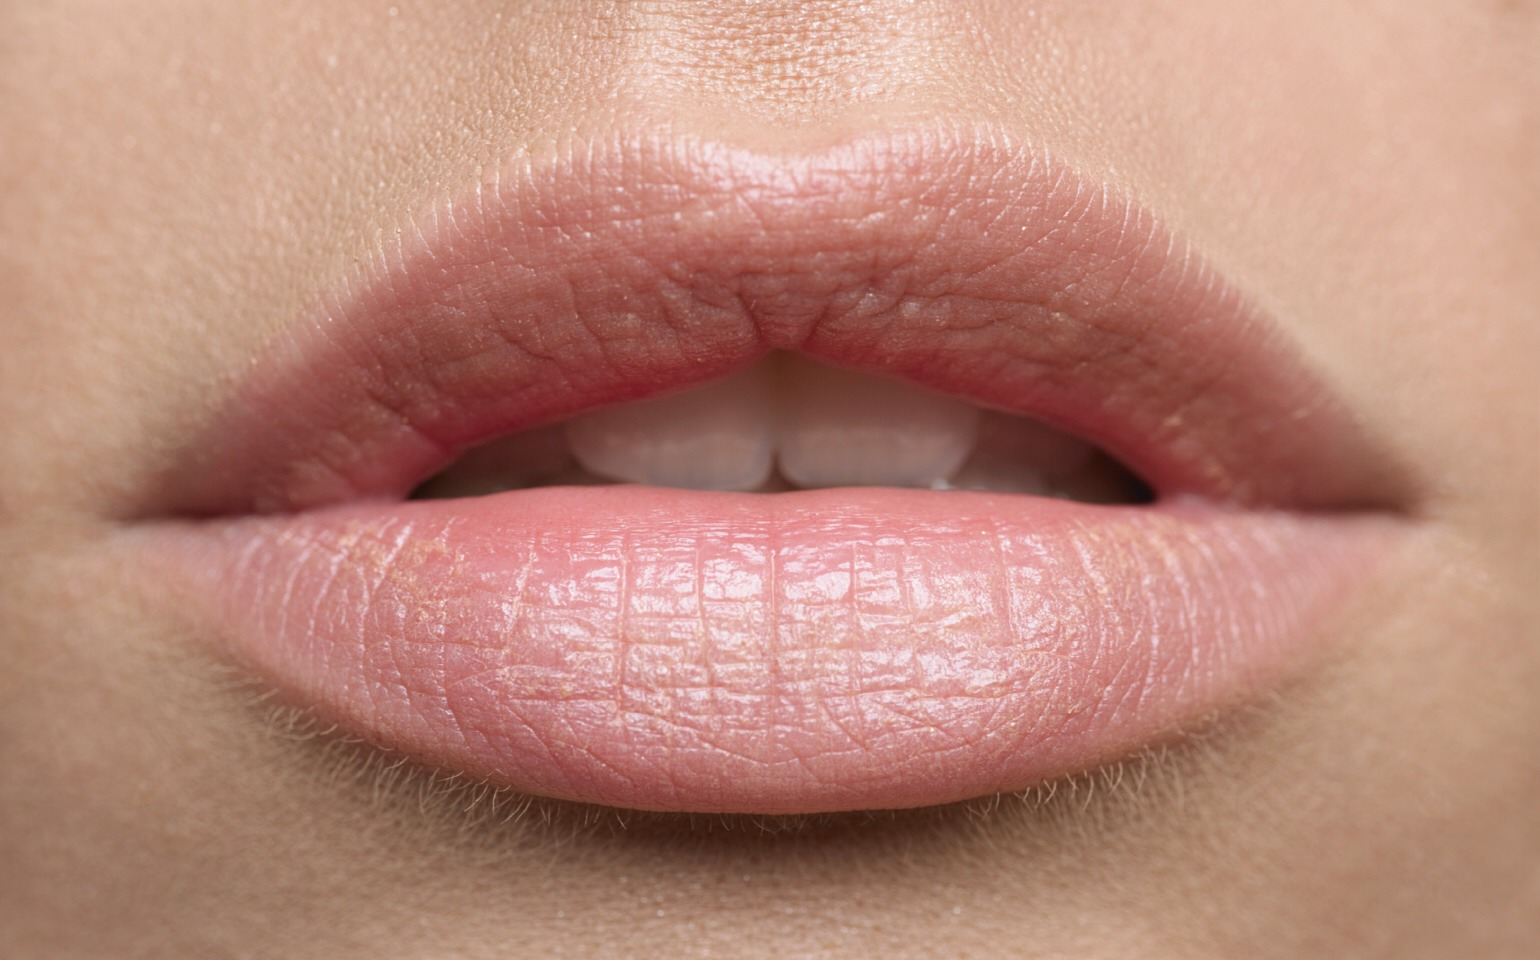 For natural lips is soft pink's corals and just lipgloss or your favor Chapstick..